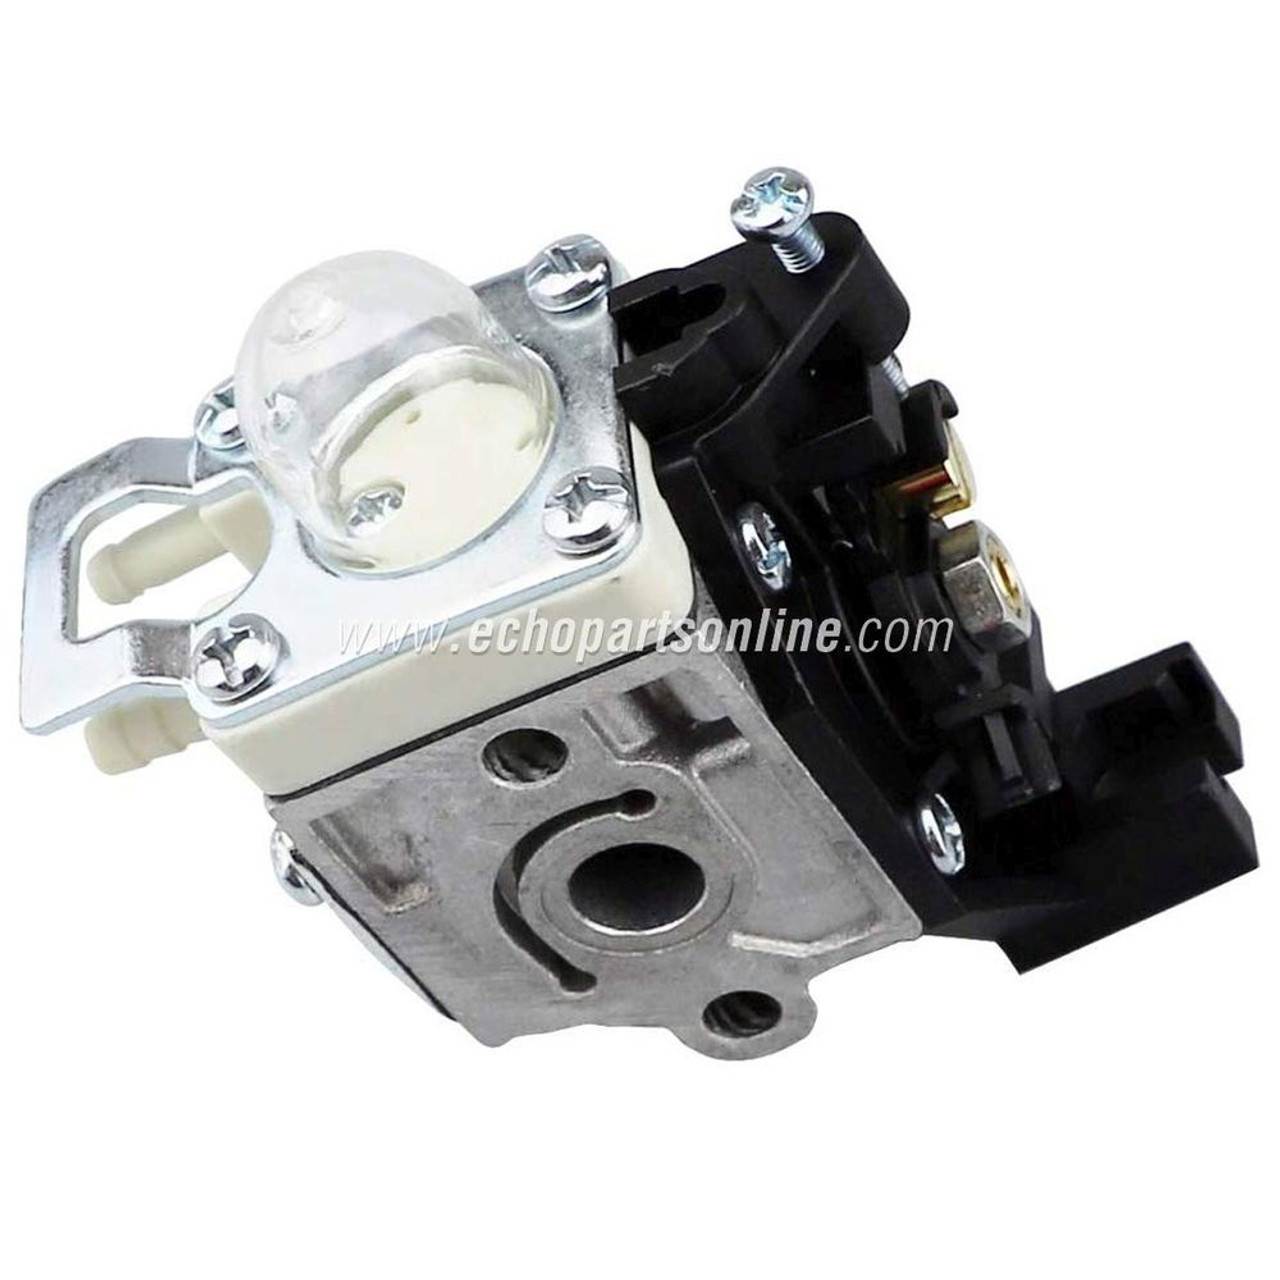 SRM-225 Carburetor A021001692 upper side view